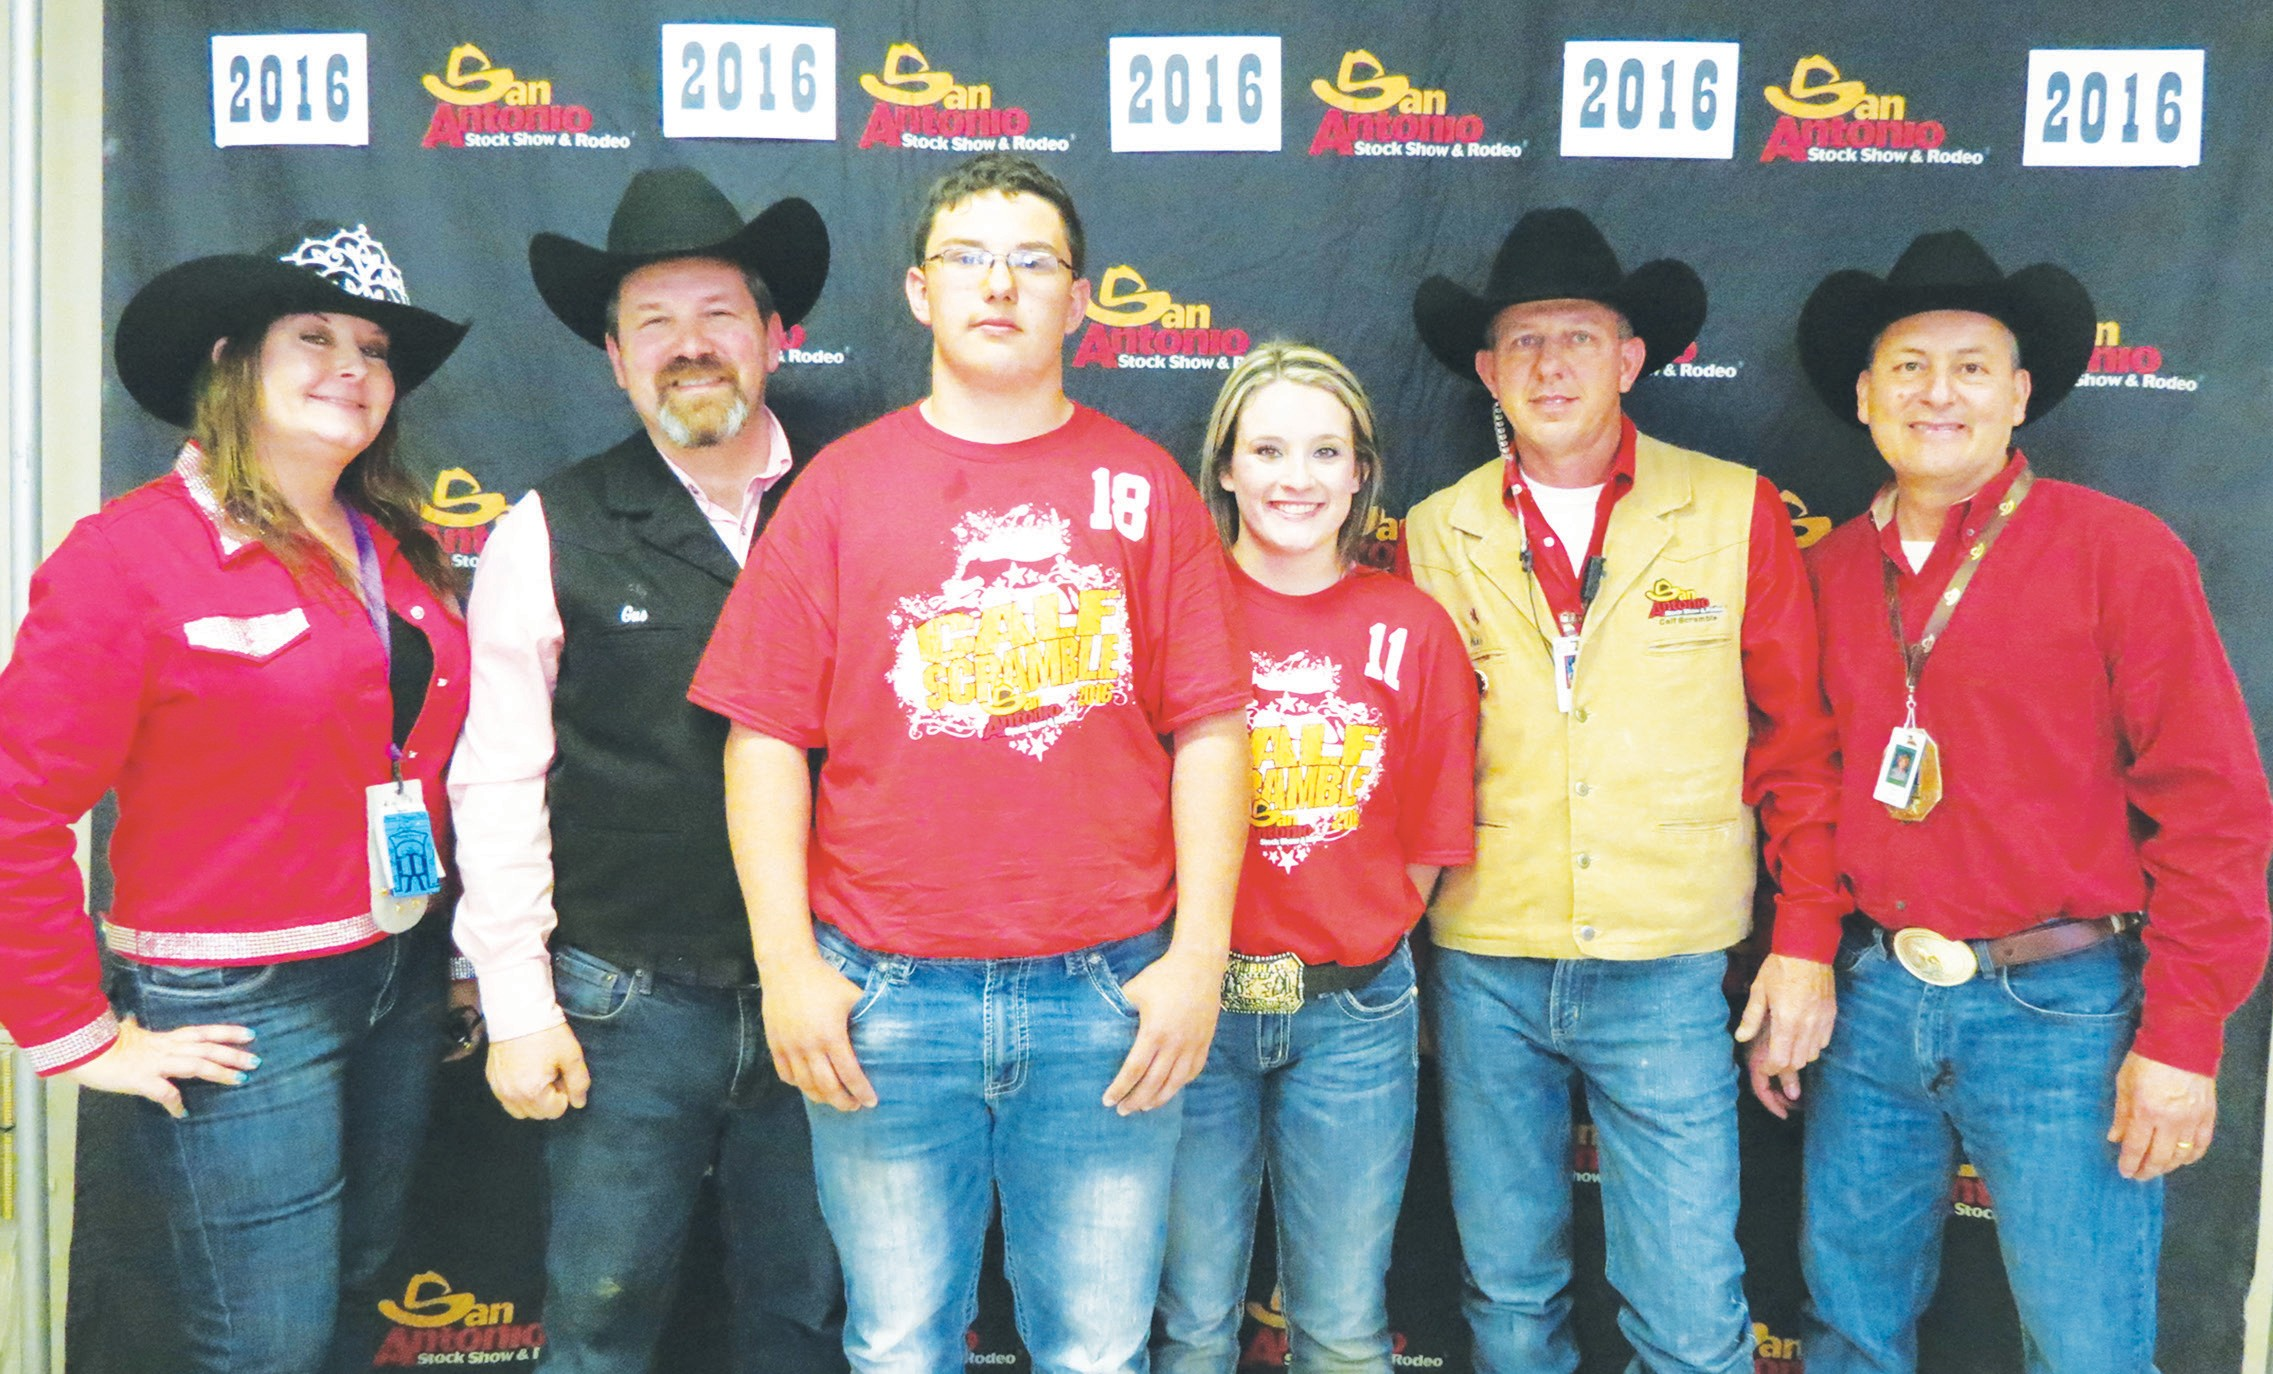 Poteet FFA members Sammy Ritchey, sophomore and Ruby Jo Peoples, junior caught the $1000.00 certificate at the San Antonio Livestock Show Calf Scramble. Pictured along with Sammy and Ruby are members of S.A.L.E.